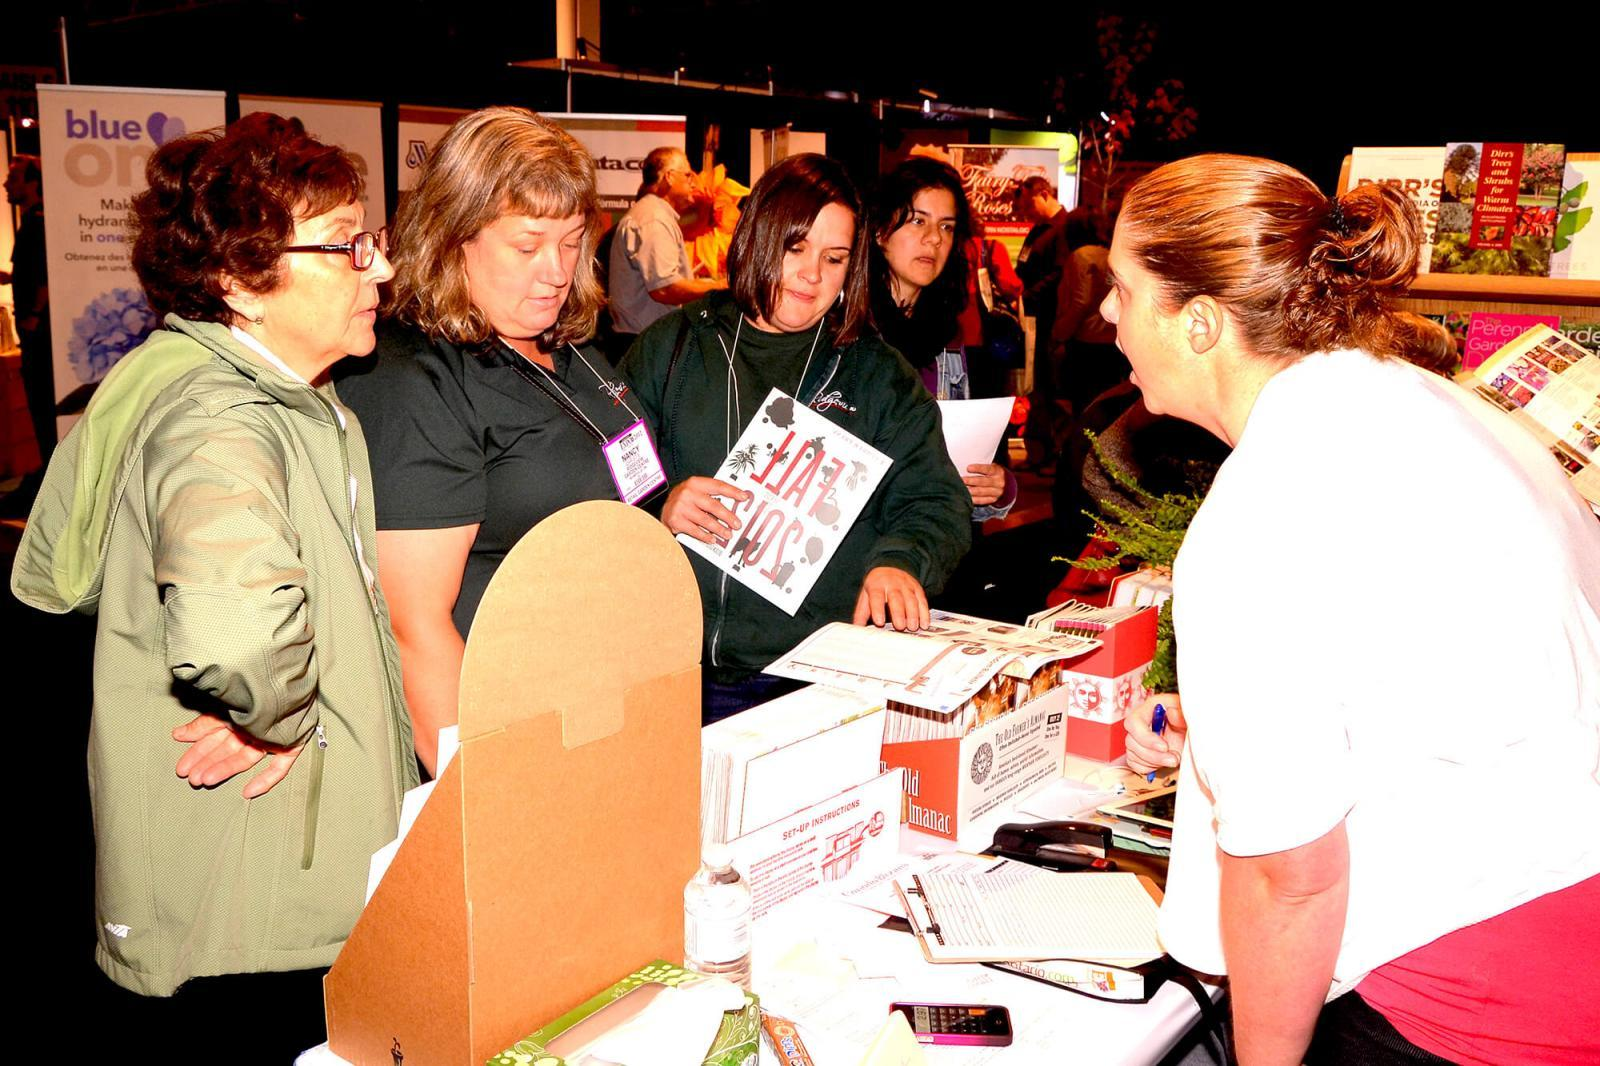 Expo generates positive energy for both attendees and exhibitors